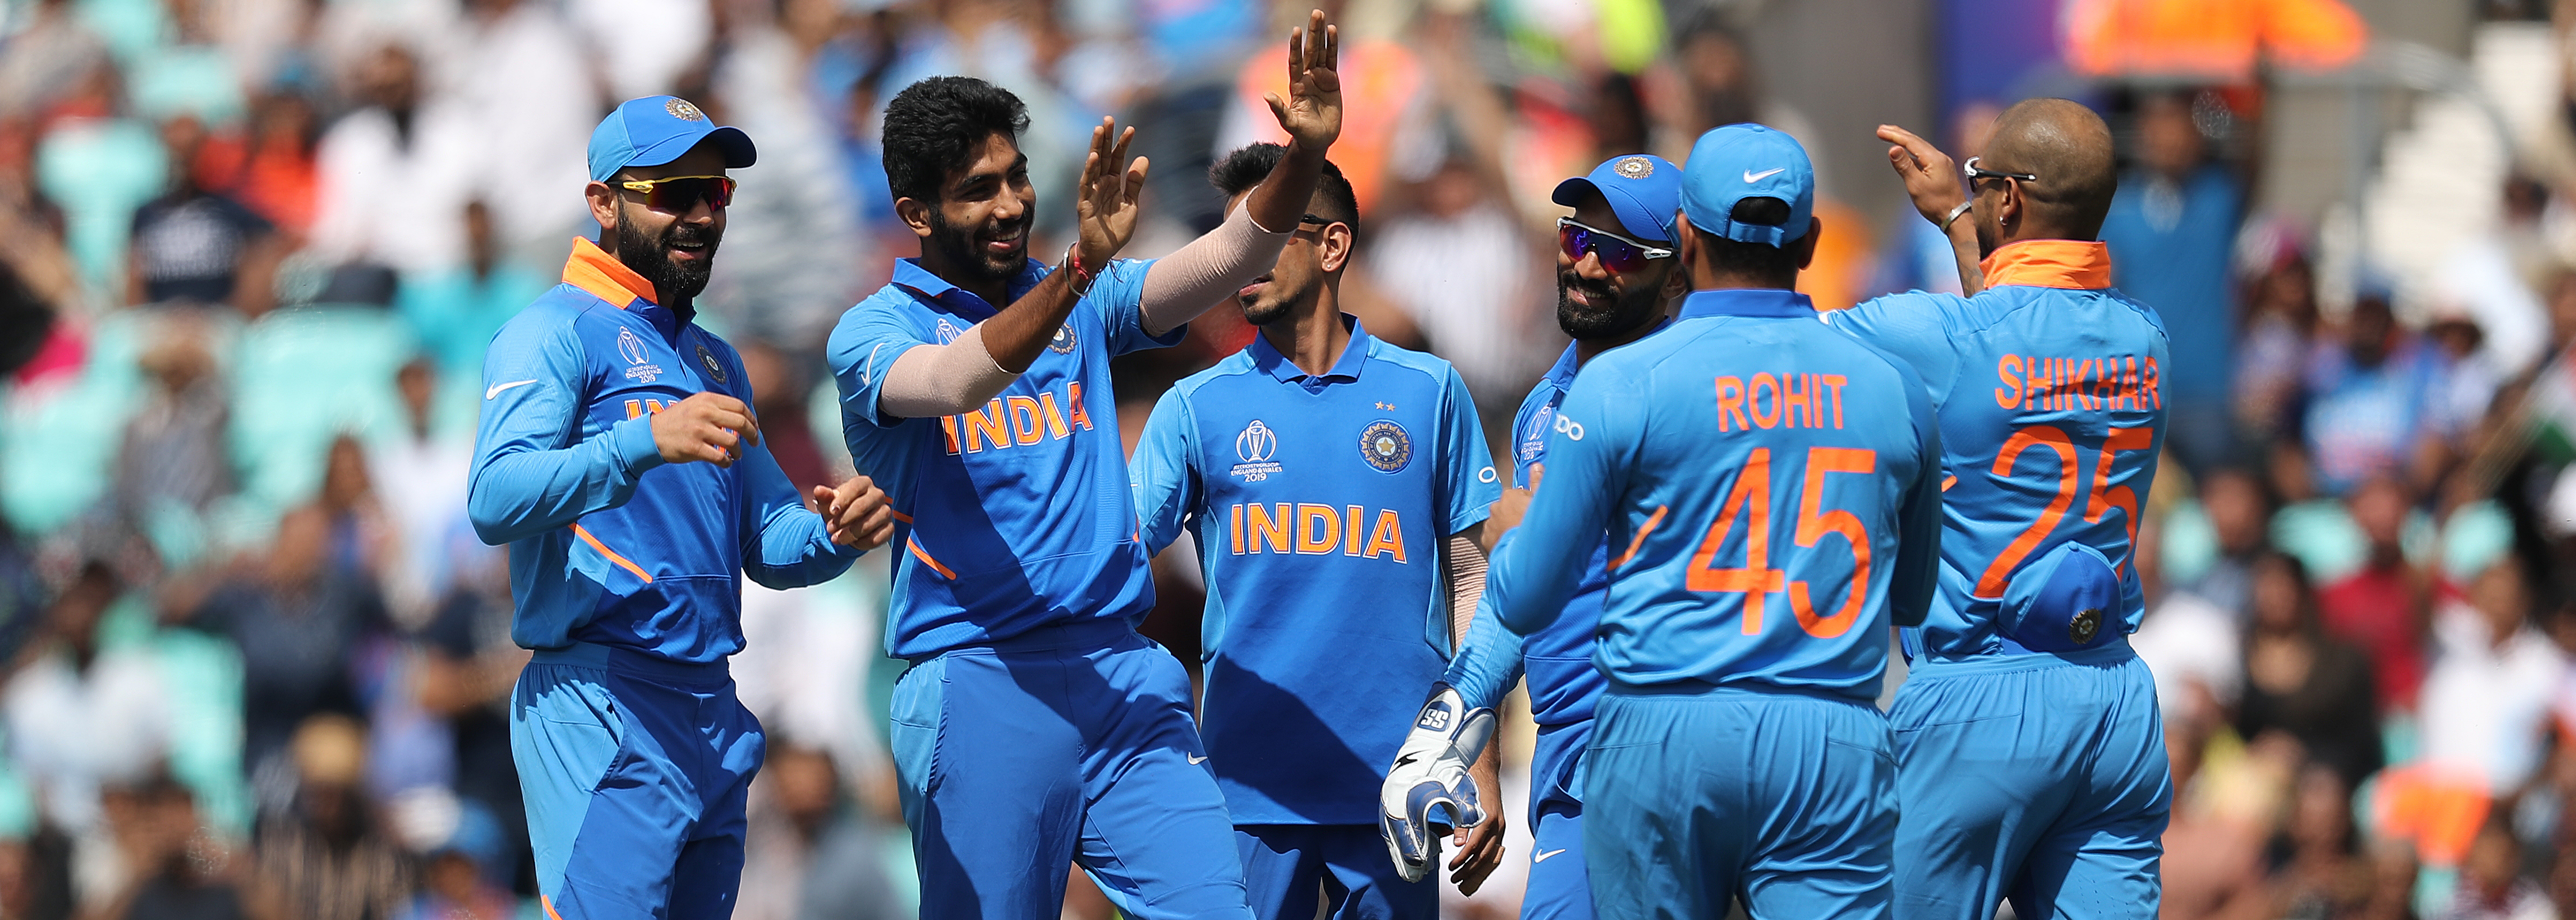 Team India aim a winning start to World Cup Campaign